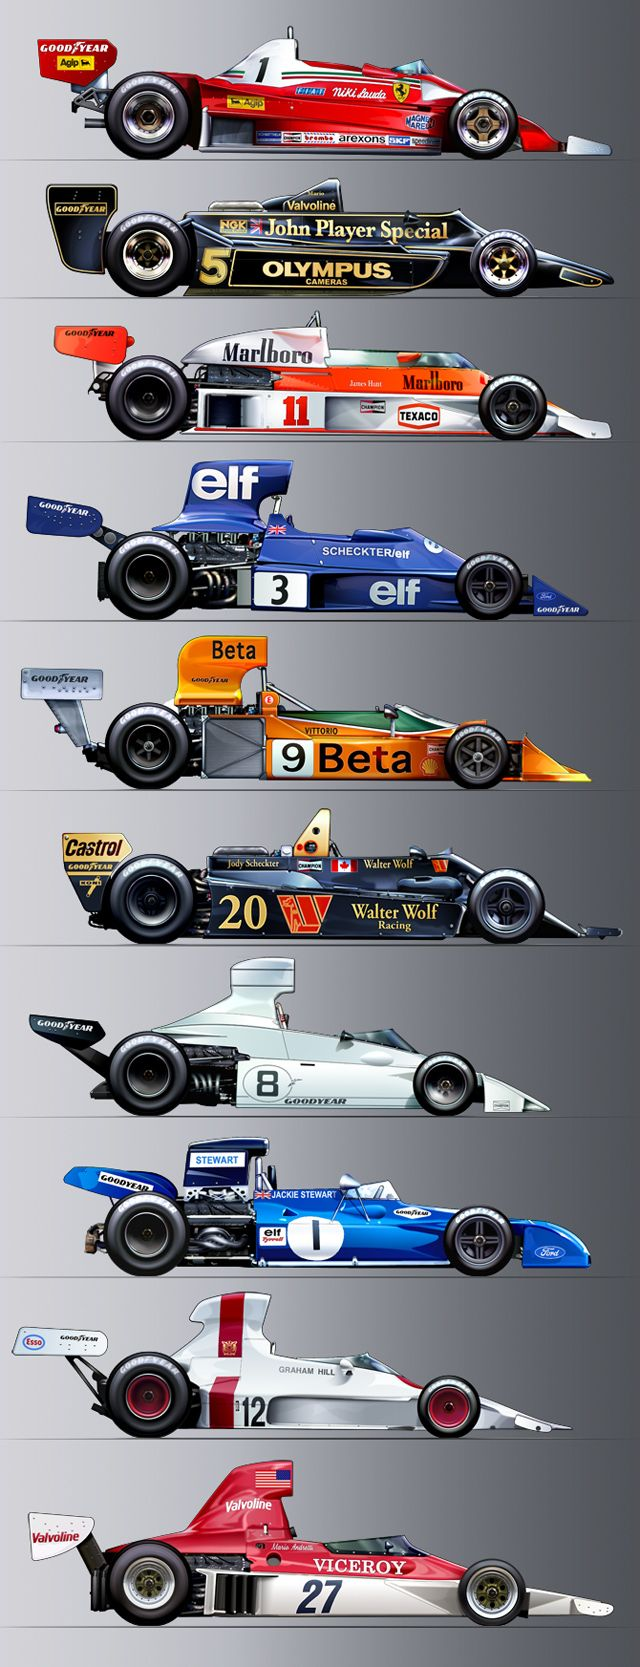 Formula 1 Race Car Illustrations - Technical Illustration - Jim Hatch Illustration